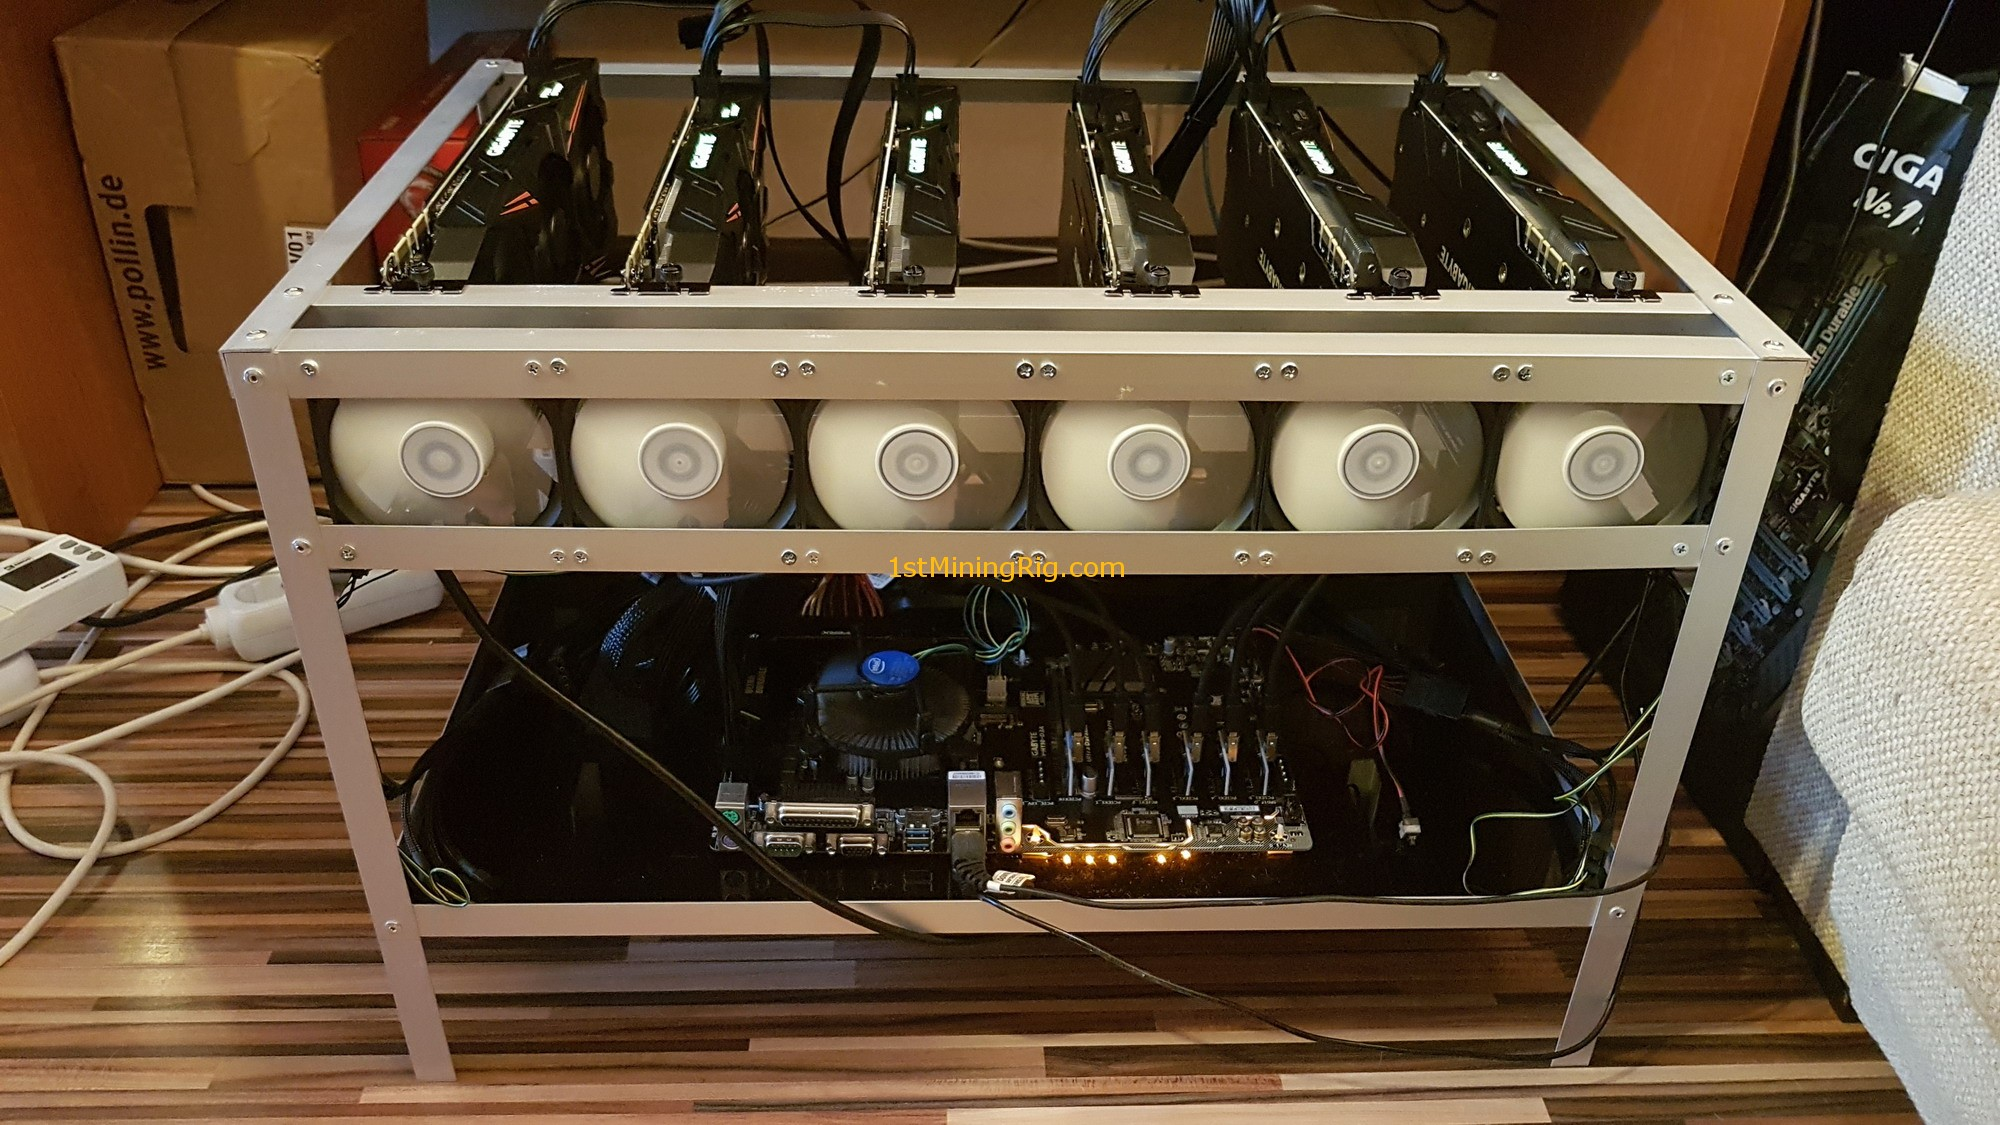 Bitcoin gold hard fork coming in 2 days everything you should nvidia gigabyte geforce gtx 1070 g1 gaming mining rig 2 bitcoin gold distribution ccuart Choice Image